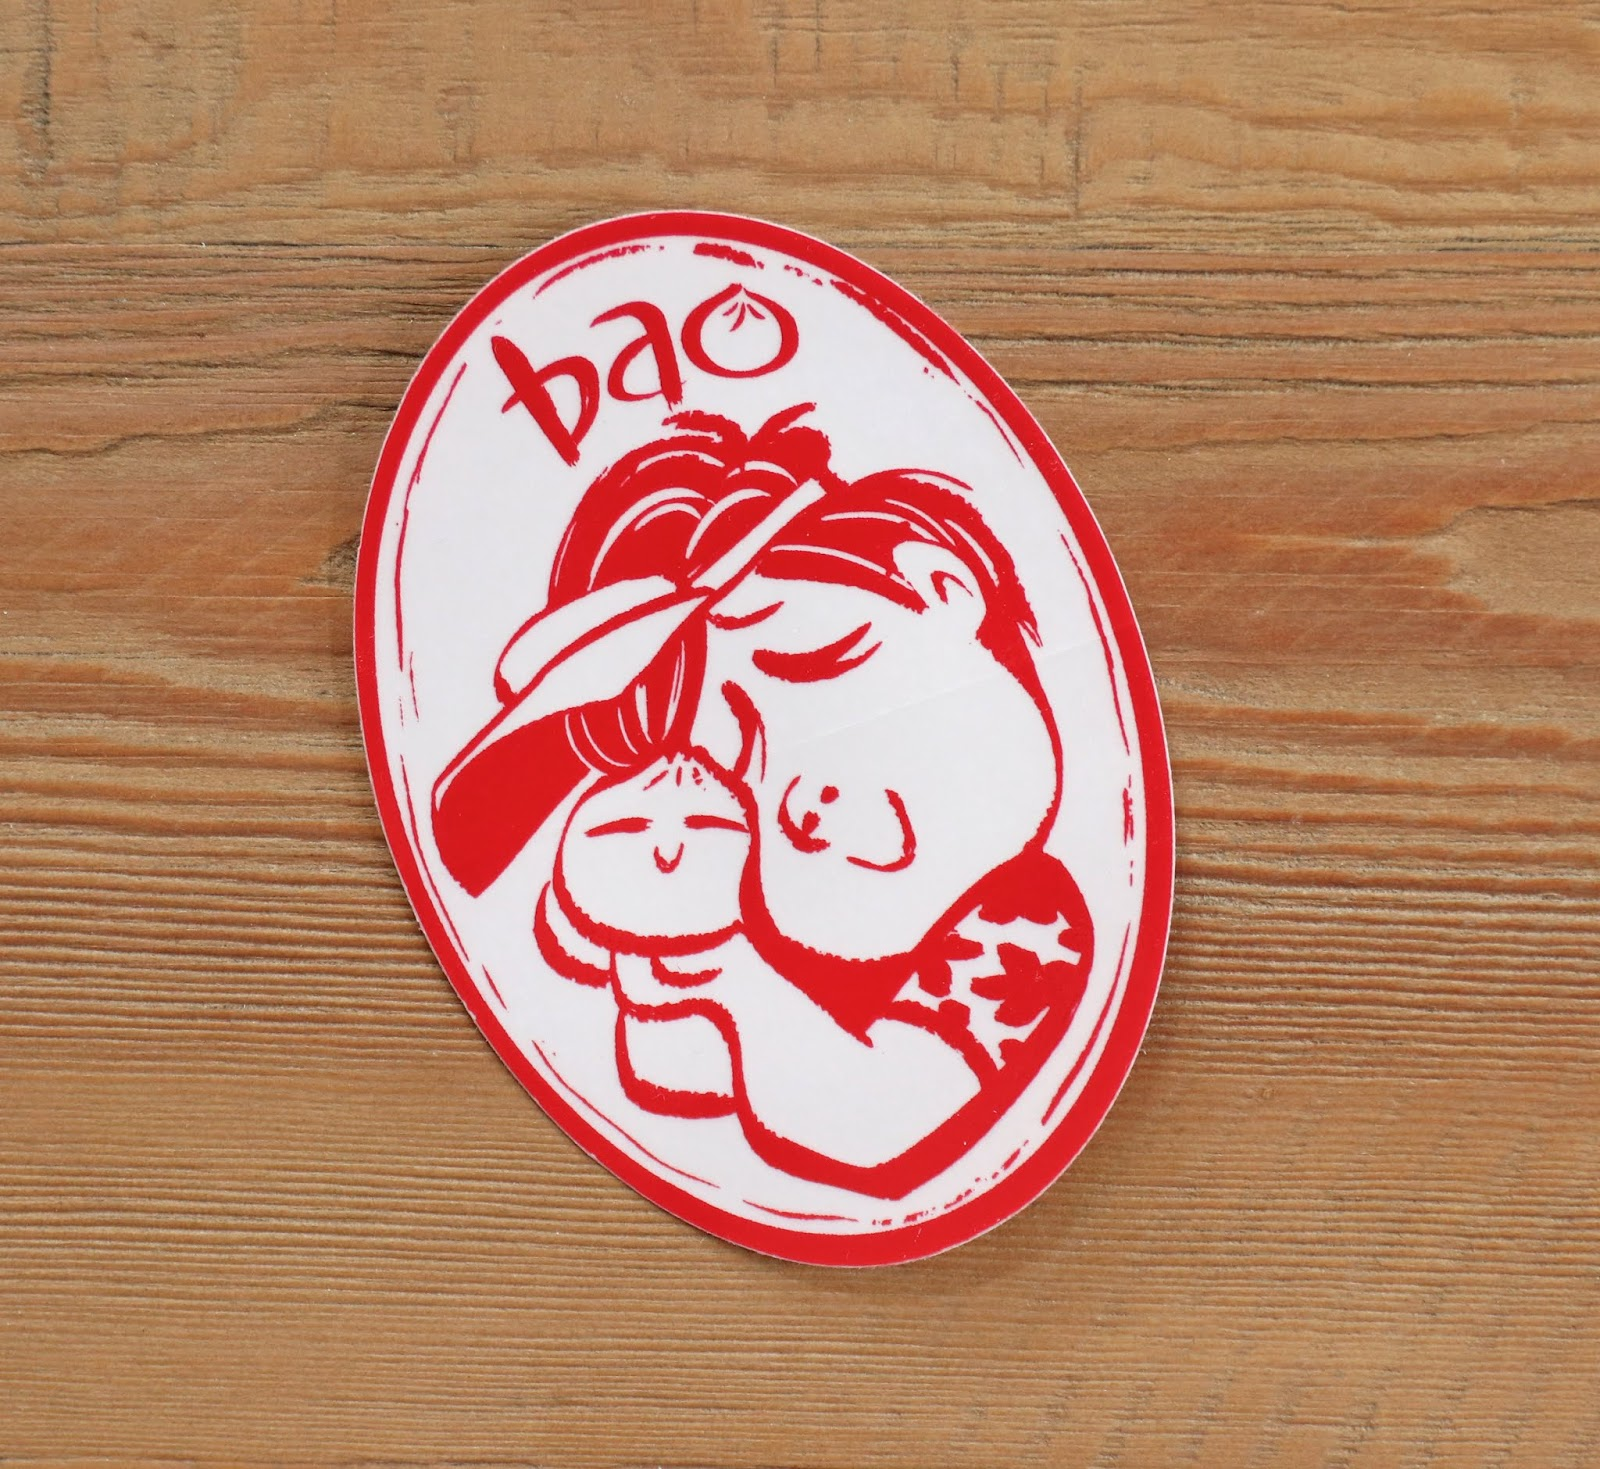 pixar bao sticker